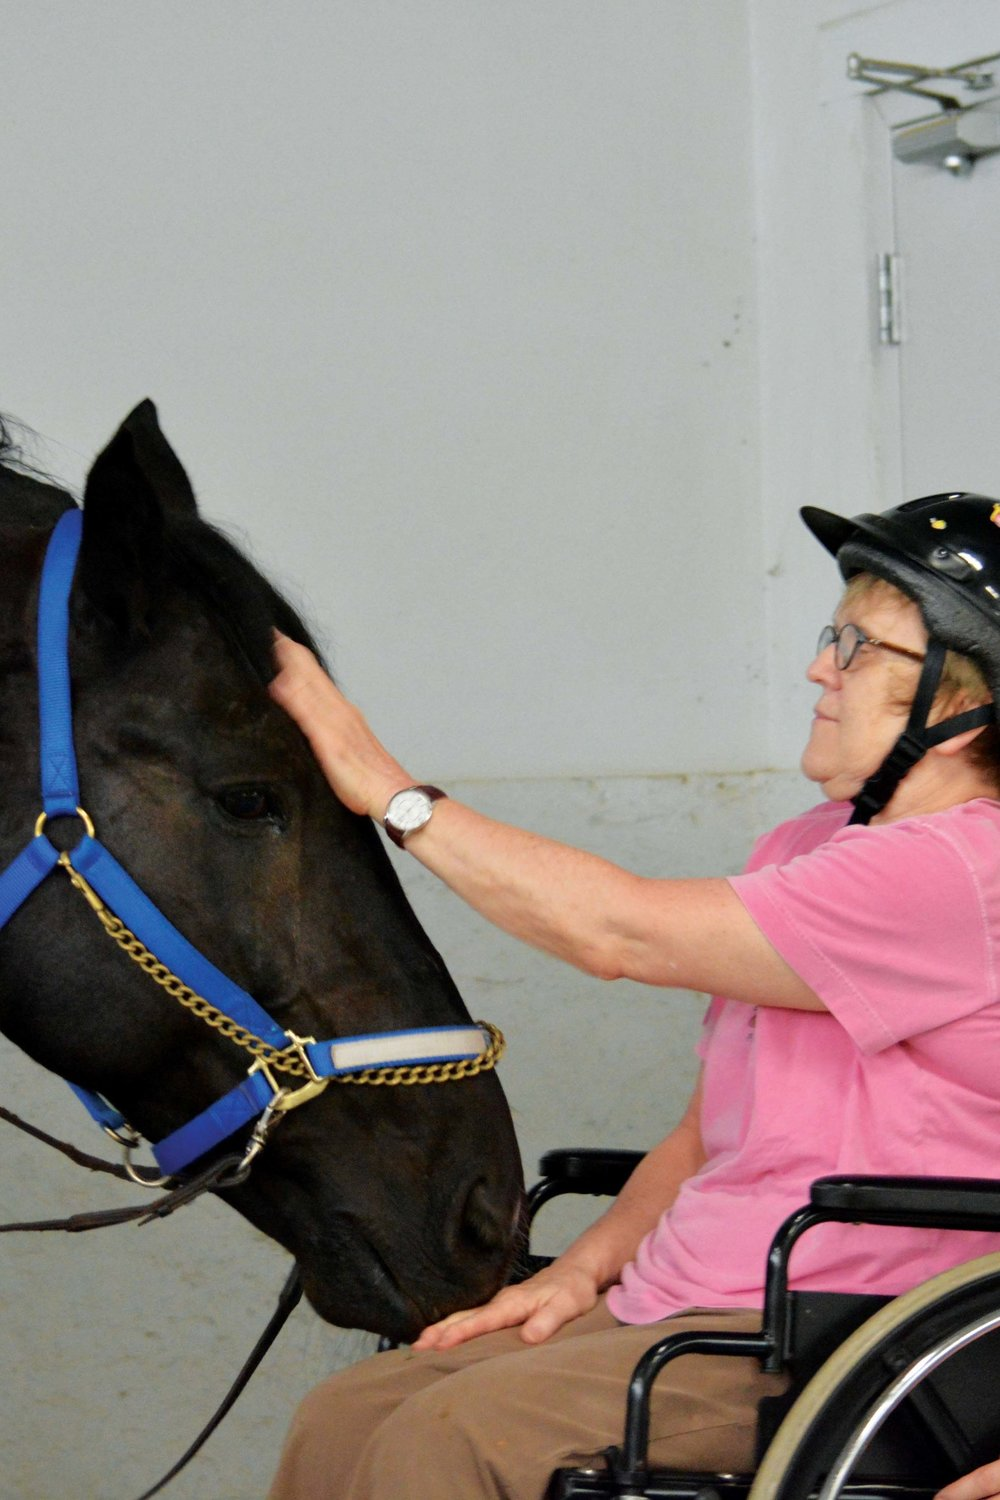 Ella - I'm a big black Percheron mare, the tallest in the barn at 16.3 hands (that's TALL!). I'm patient will ALL of my riders and love getting scratched.